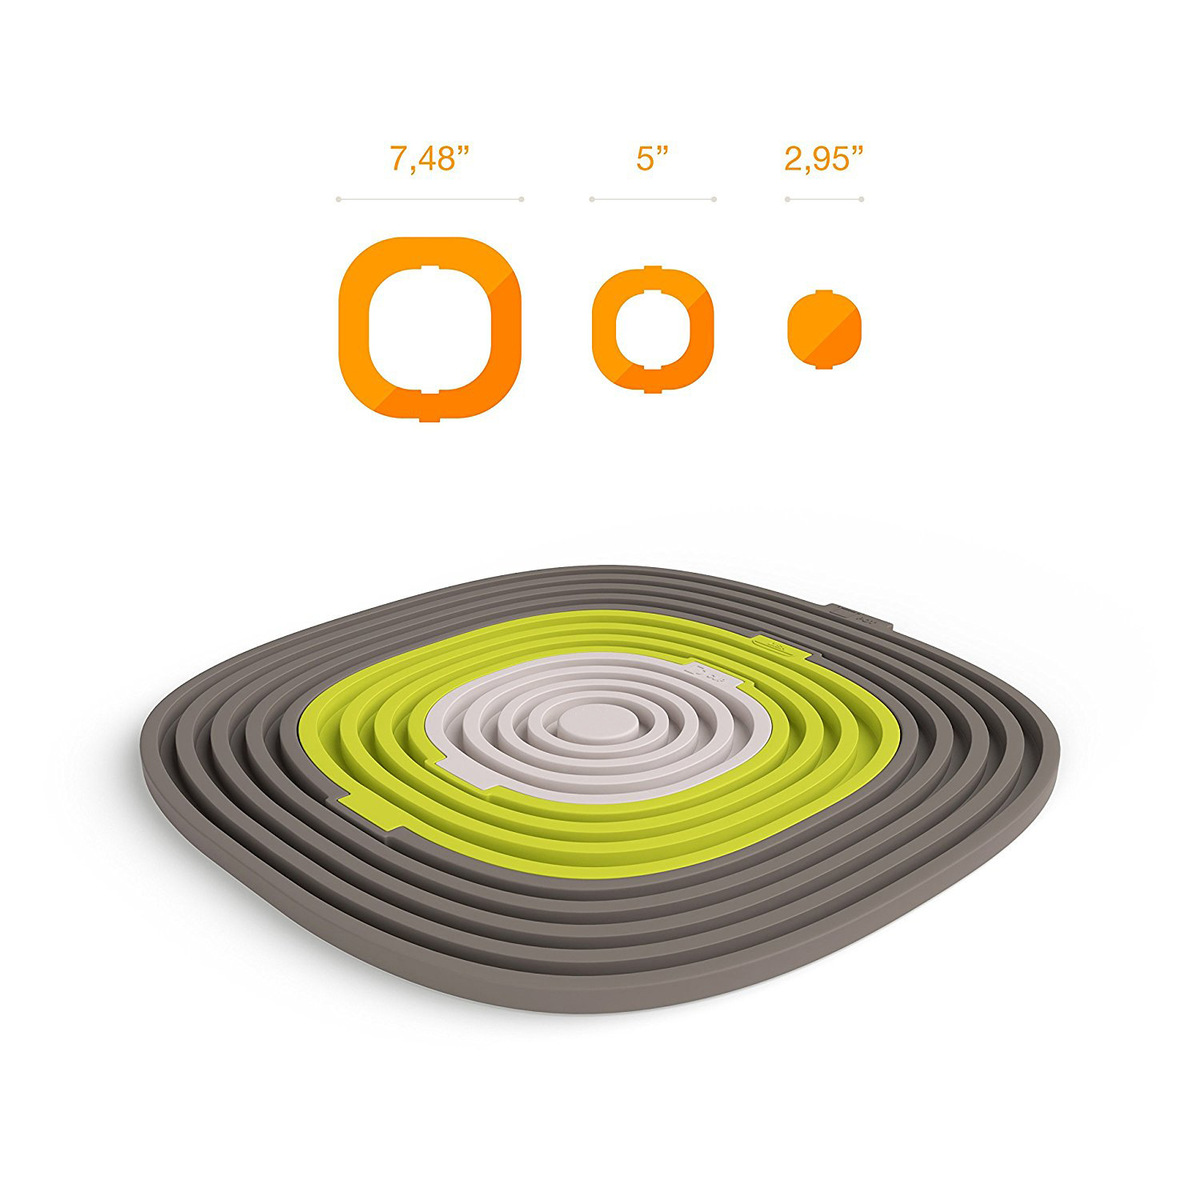 Mats & Pads 3pcs/set Silicone Heat-resistant Pot Mat Cup Drink Coasters Dish Insulation Pad Table Dining Placemats Kitchen Accessories Table Decoration & Accessories